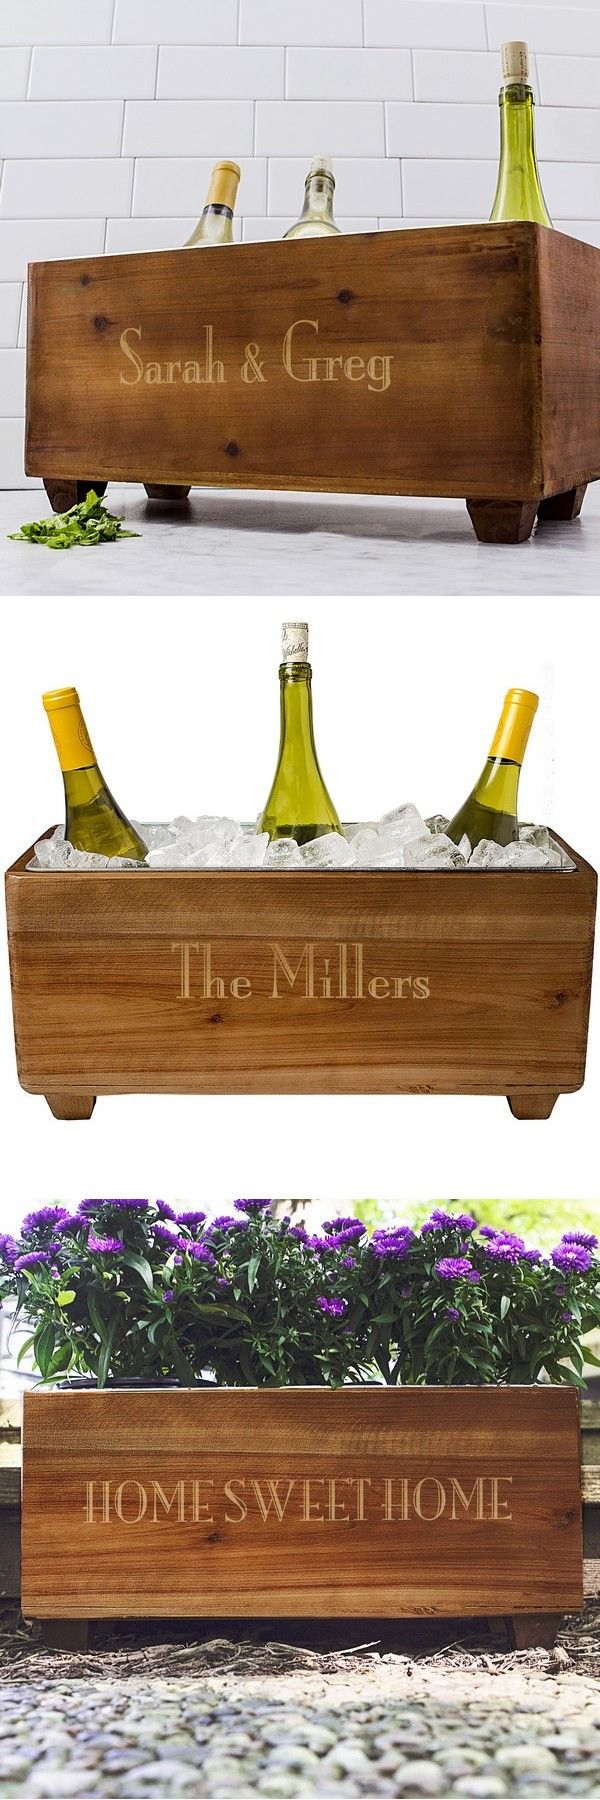 A unique home decor gift idea for the wine lover in your wedding party, this rustic wood wine chiller trough laser engraved with a name or short phrase in block lettering is sure to be treasured by your maid of honor, bridesmaid, mom, sister or best friend. Use for entertain guests, relaxing in the house, on the deck or at the pool. Also a great ice bucket alternative, this chiller can be ordered at http://myweddingreceptionideas.com/custom-printed-rustic-wood-trough-wine-chiller.asp